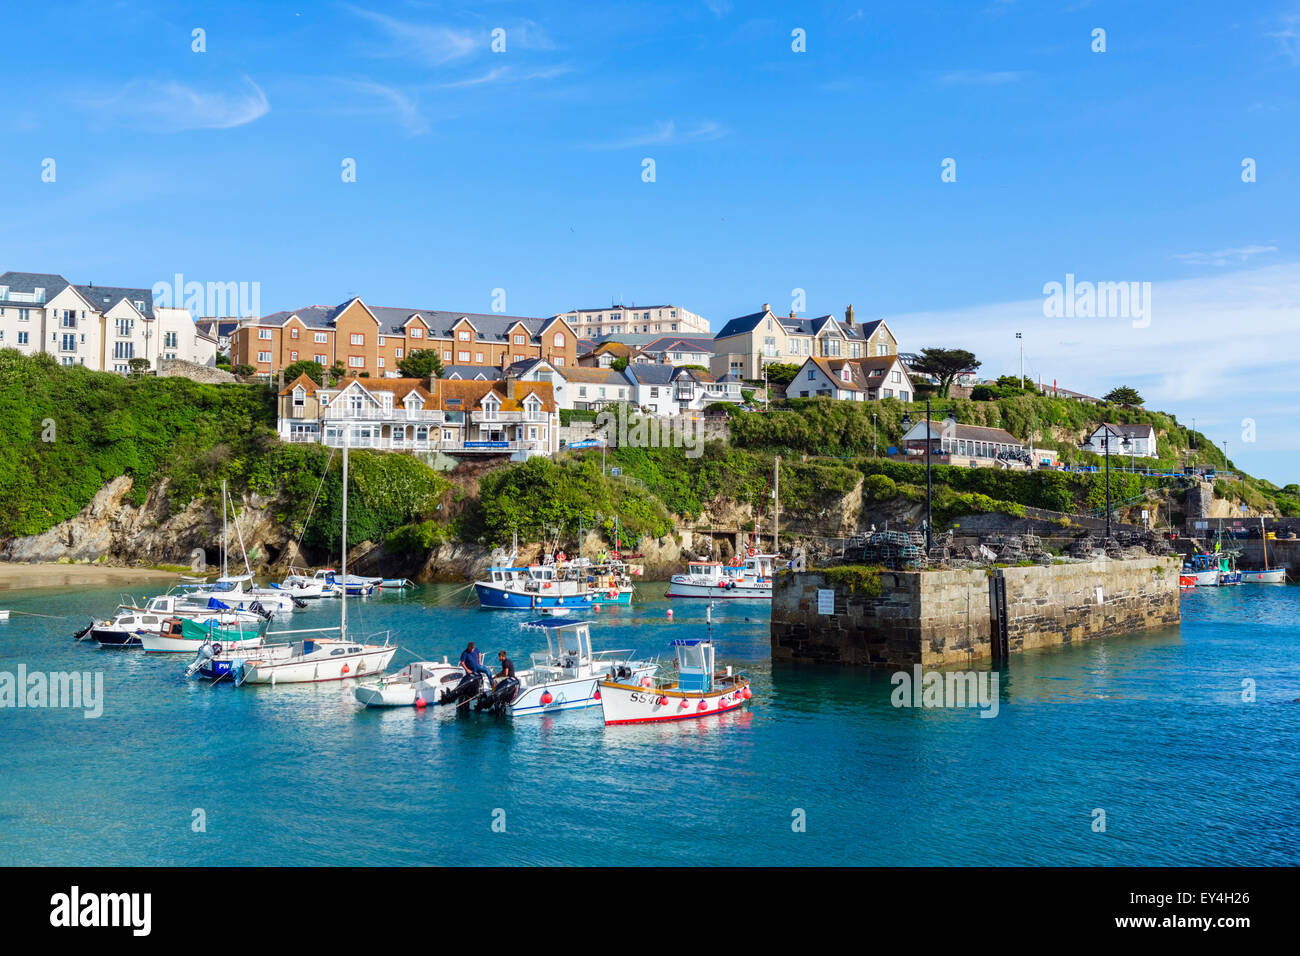 Der Hafen in Newquay, Cornwall, England, UK Stockbild